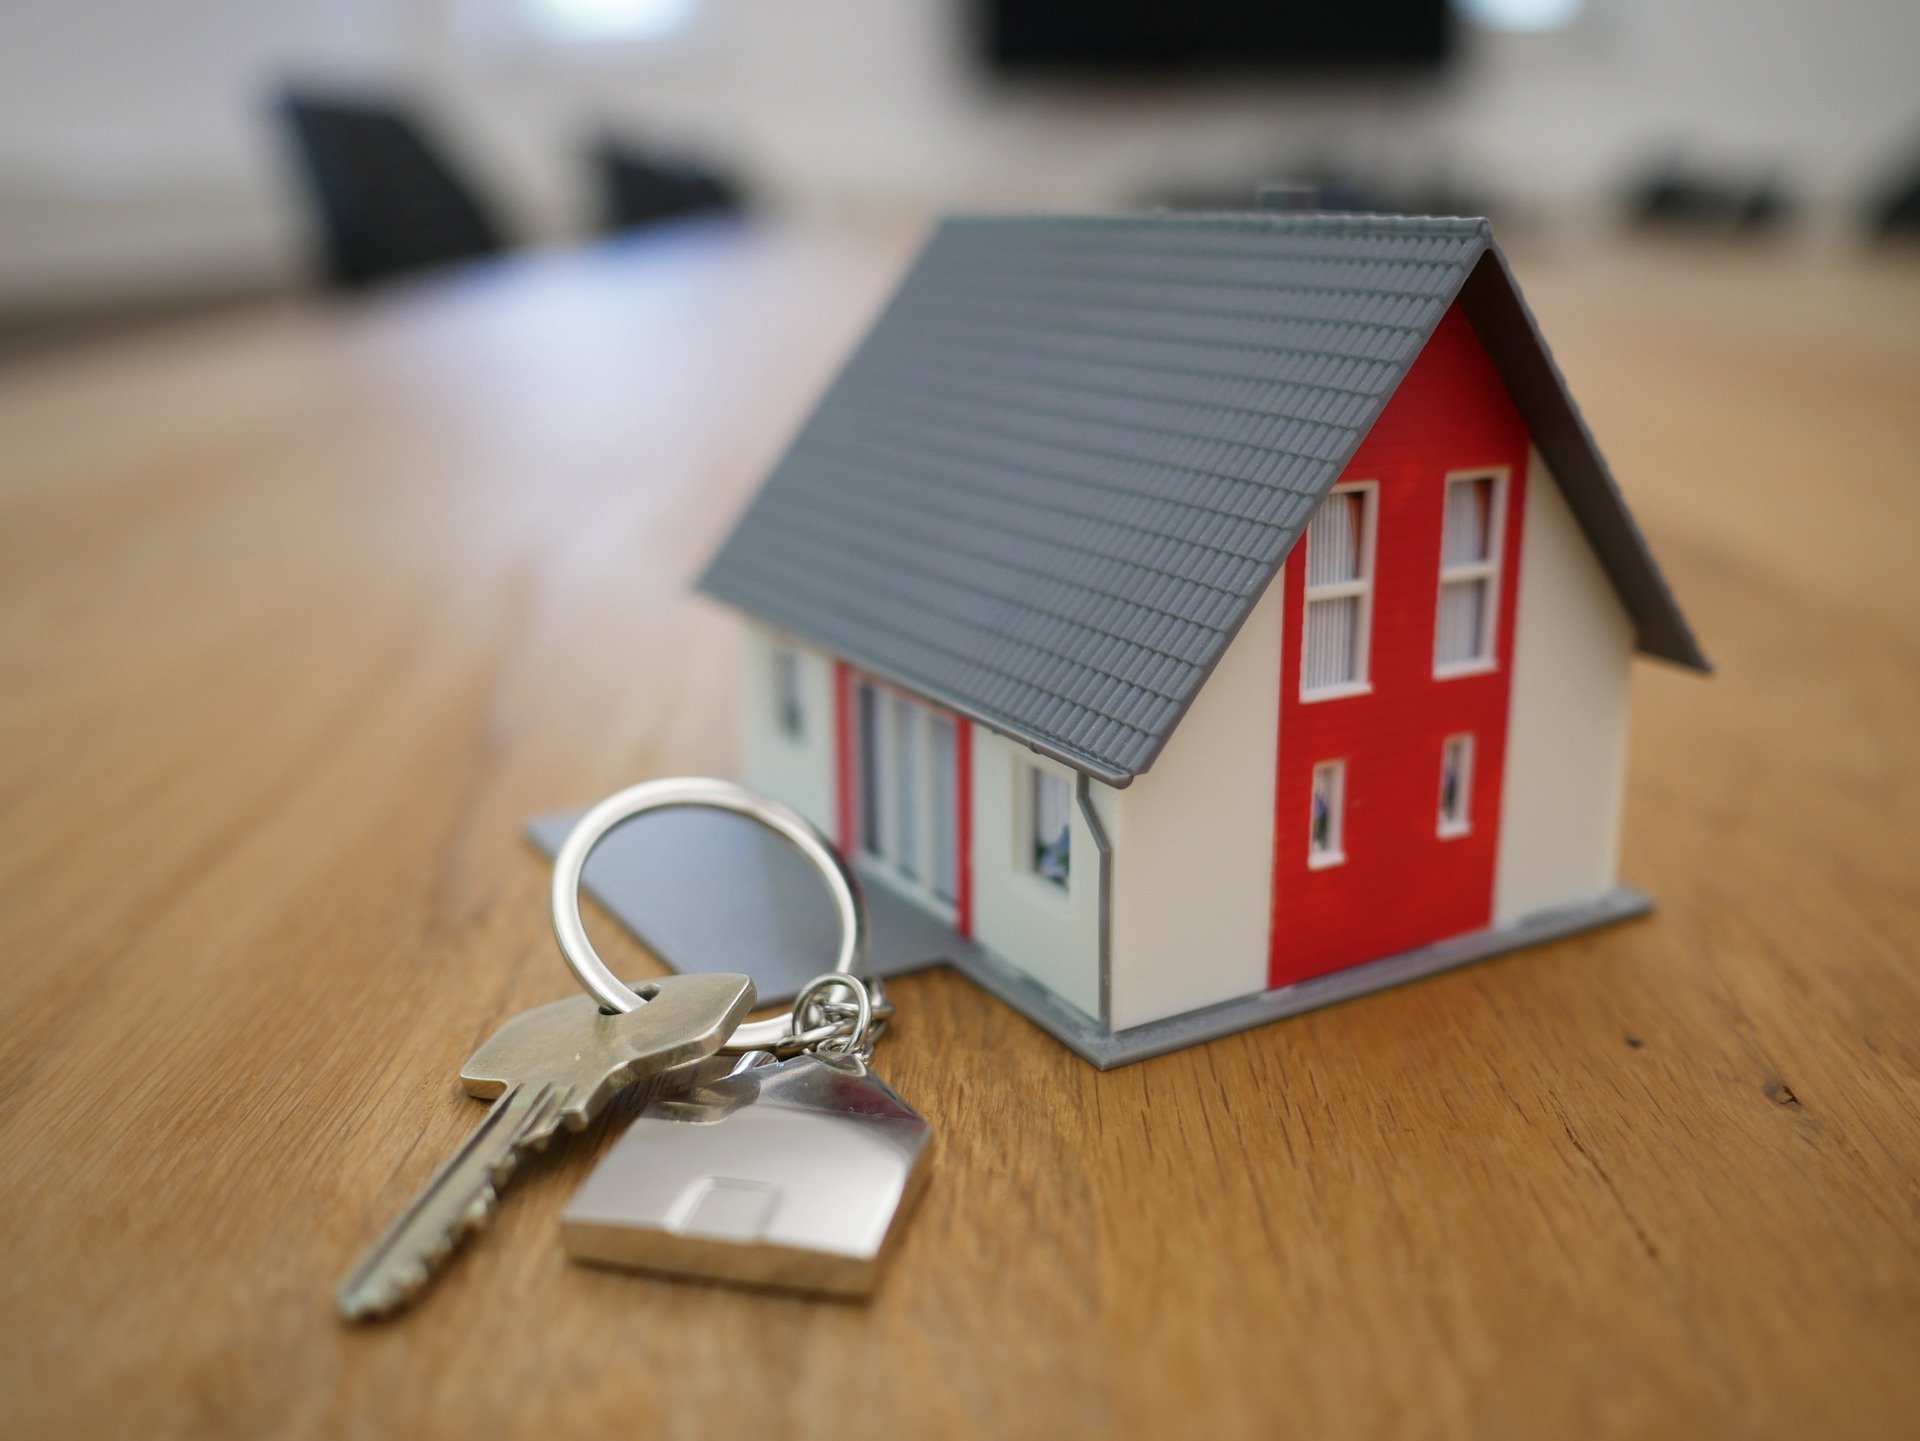 https://g.page/your-australian-property-buyers